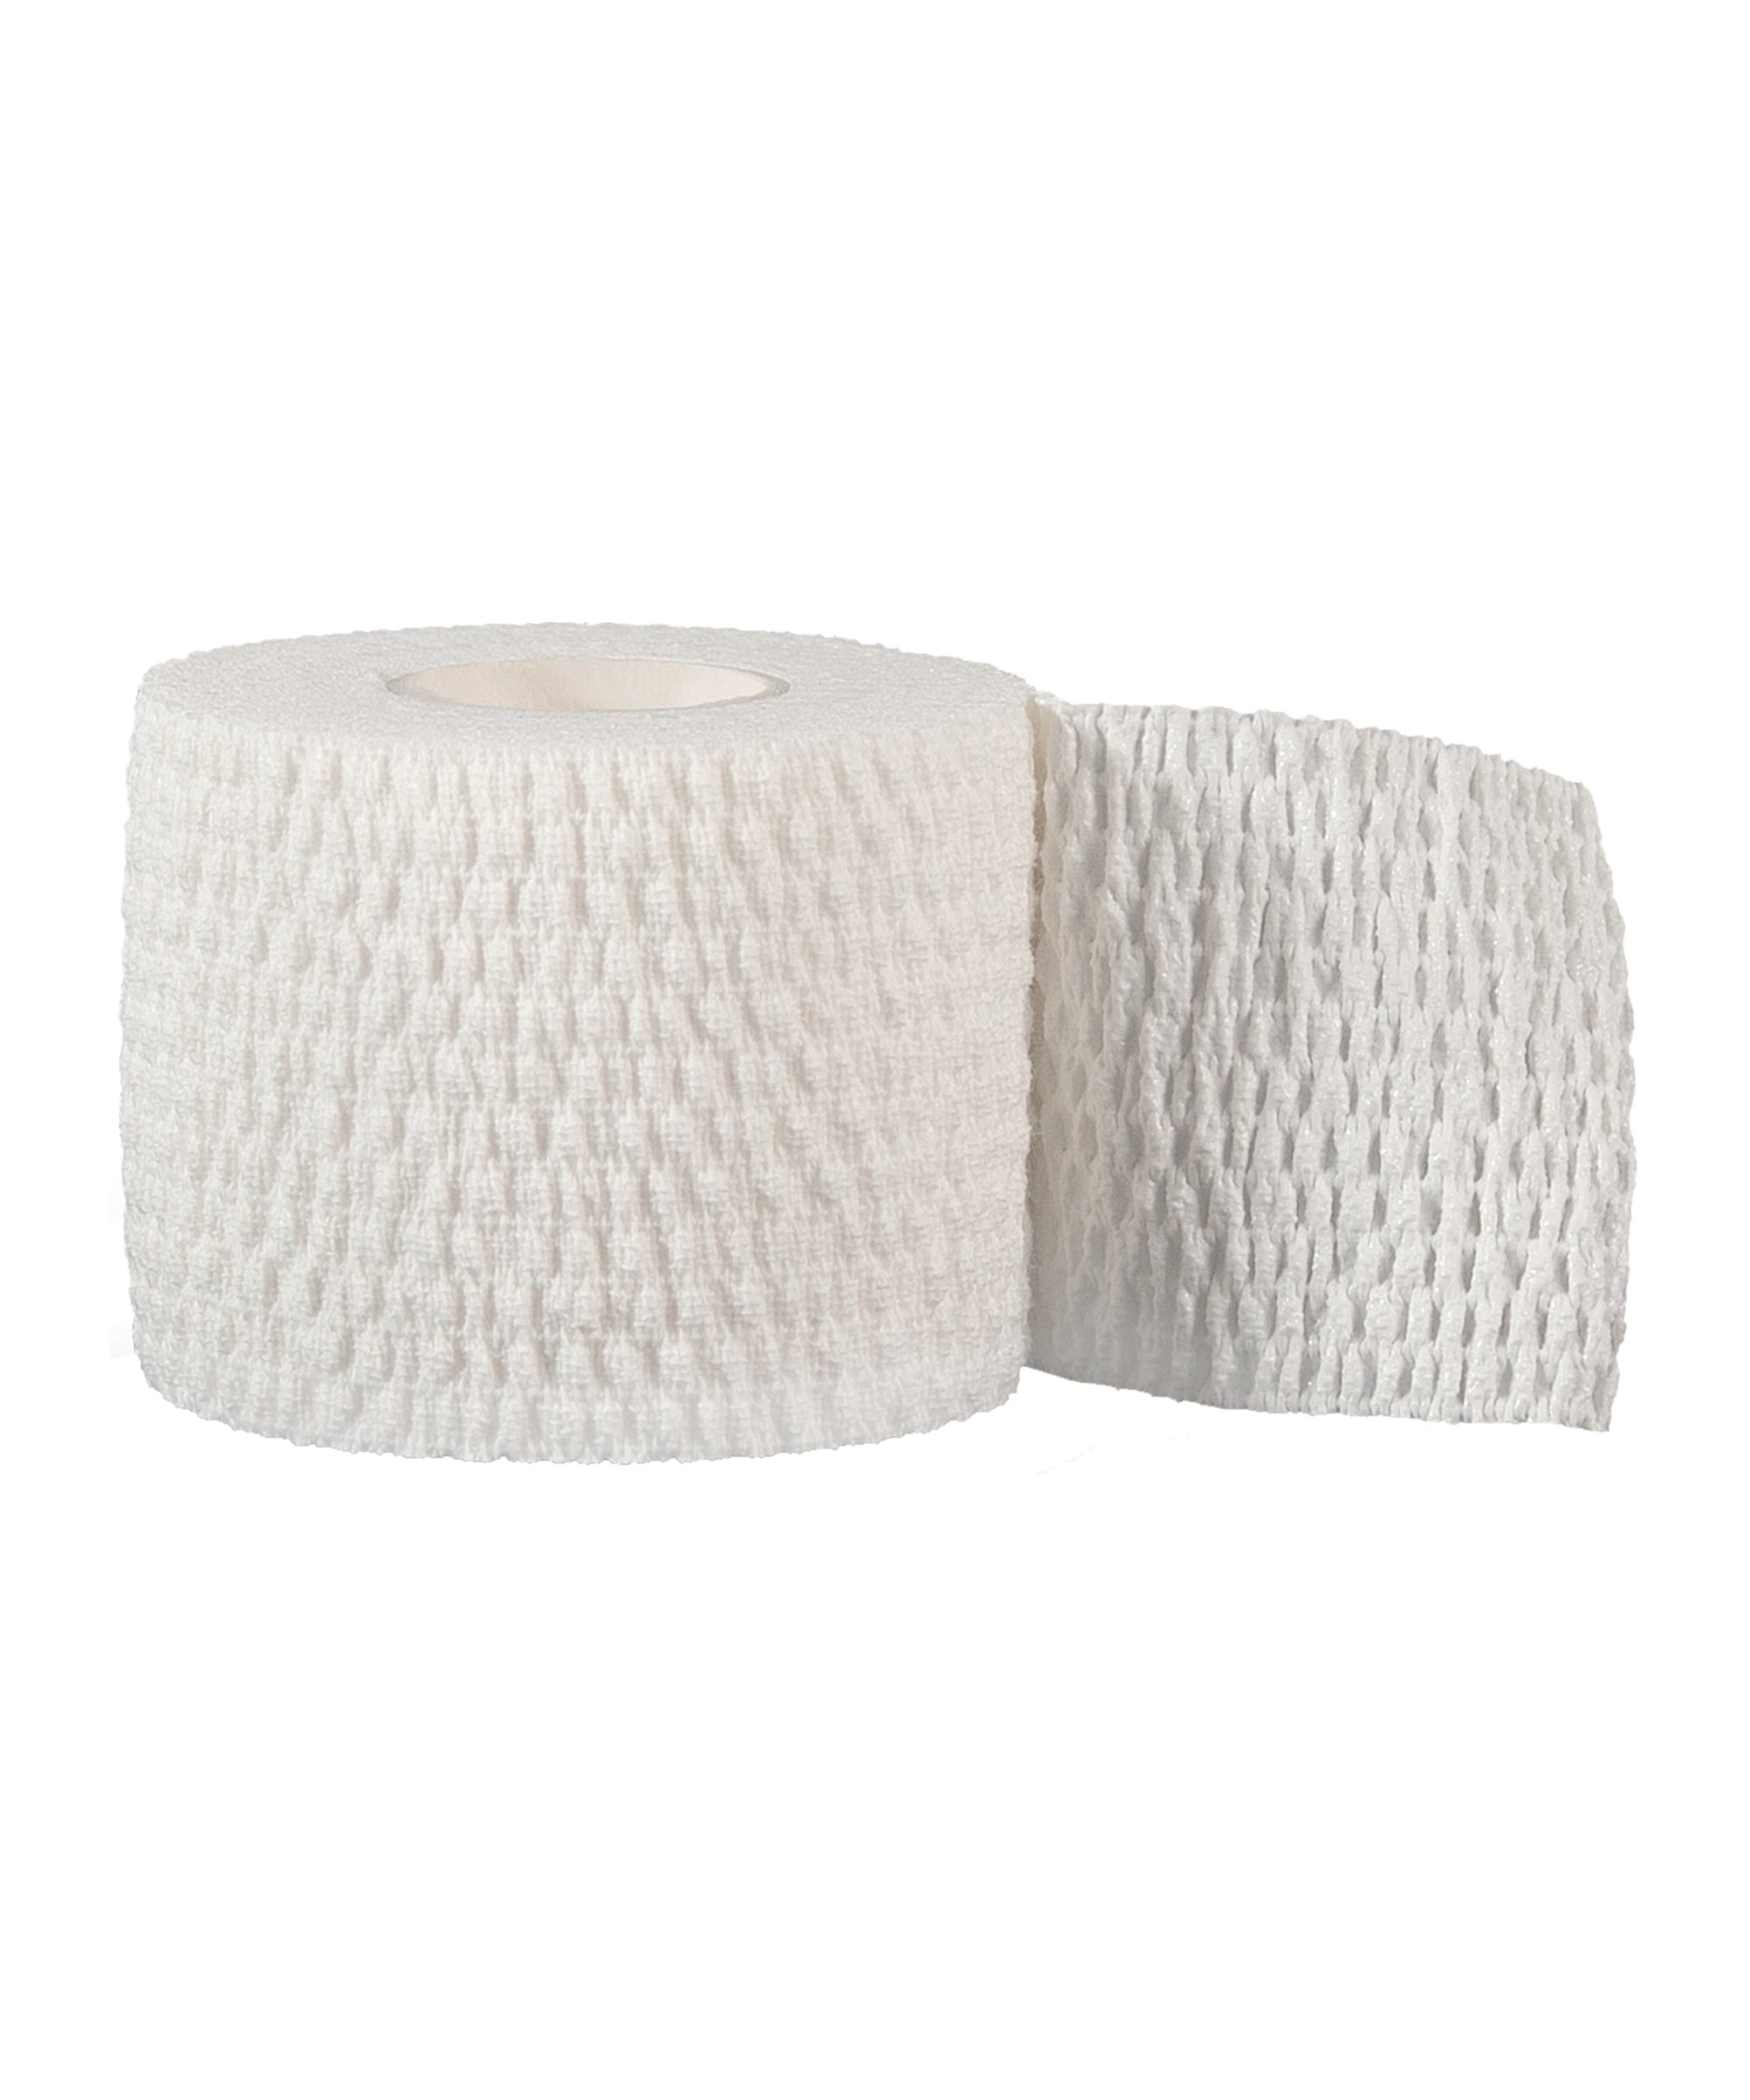 Select Stretch Tape 5,0cm x 6,9m Weiss F000 - weiss